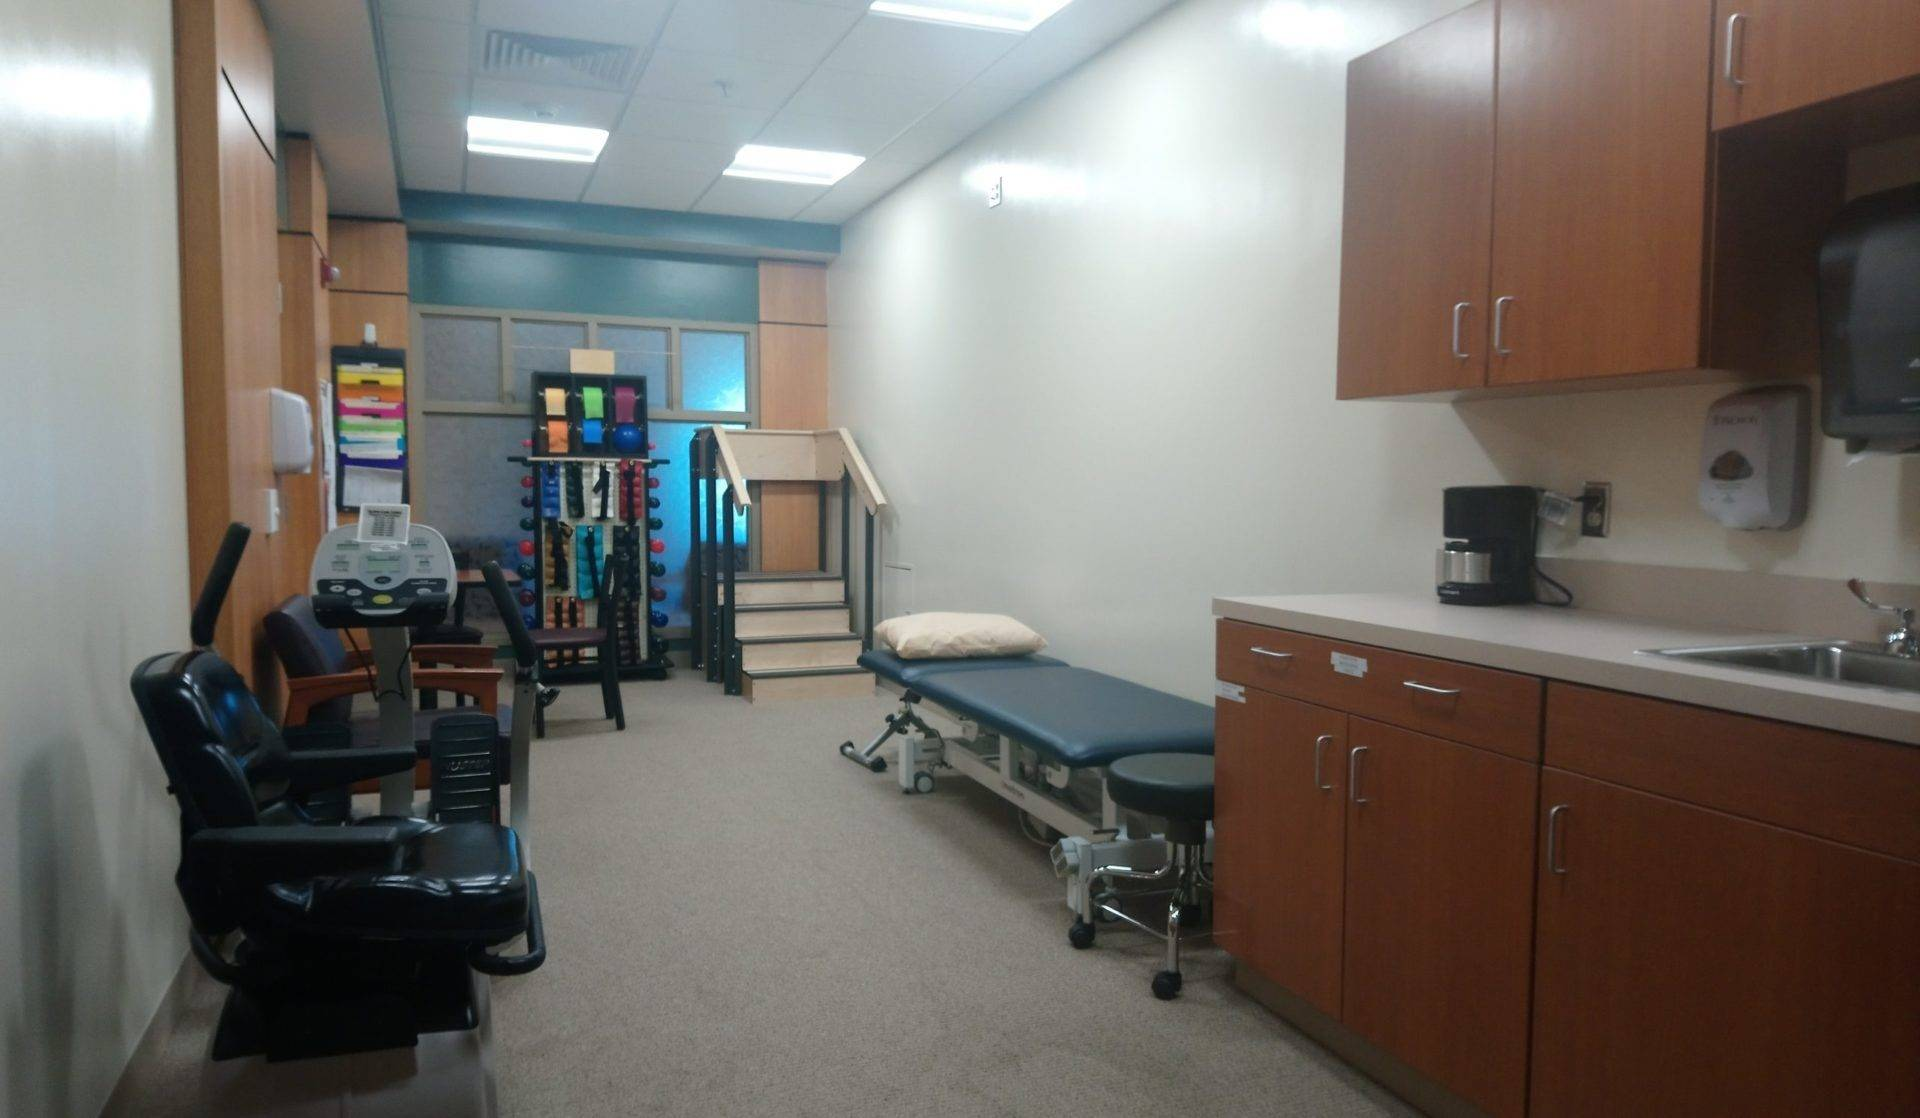 inpatient or swing bed rehab room on 3rd floor